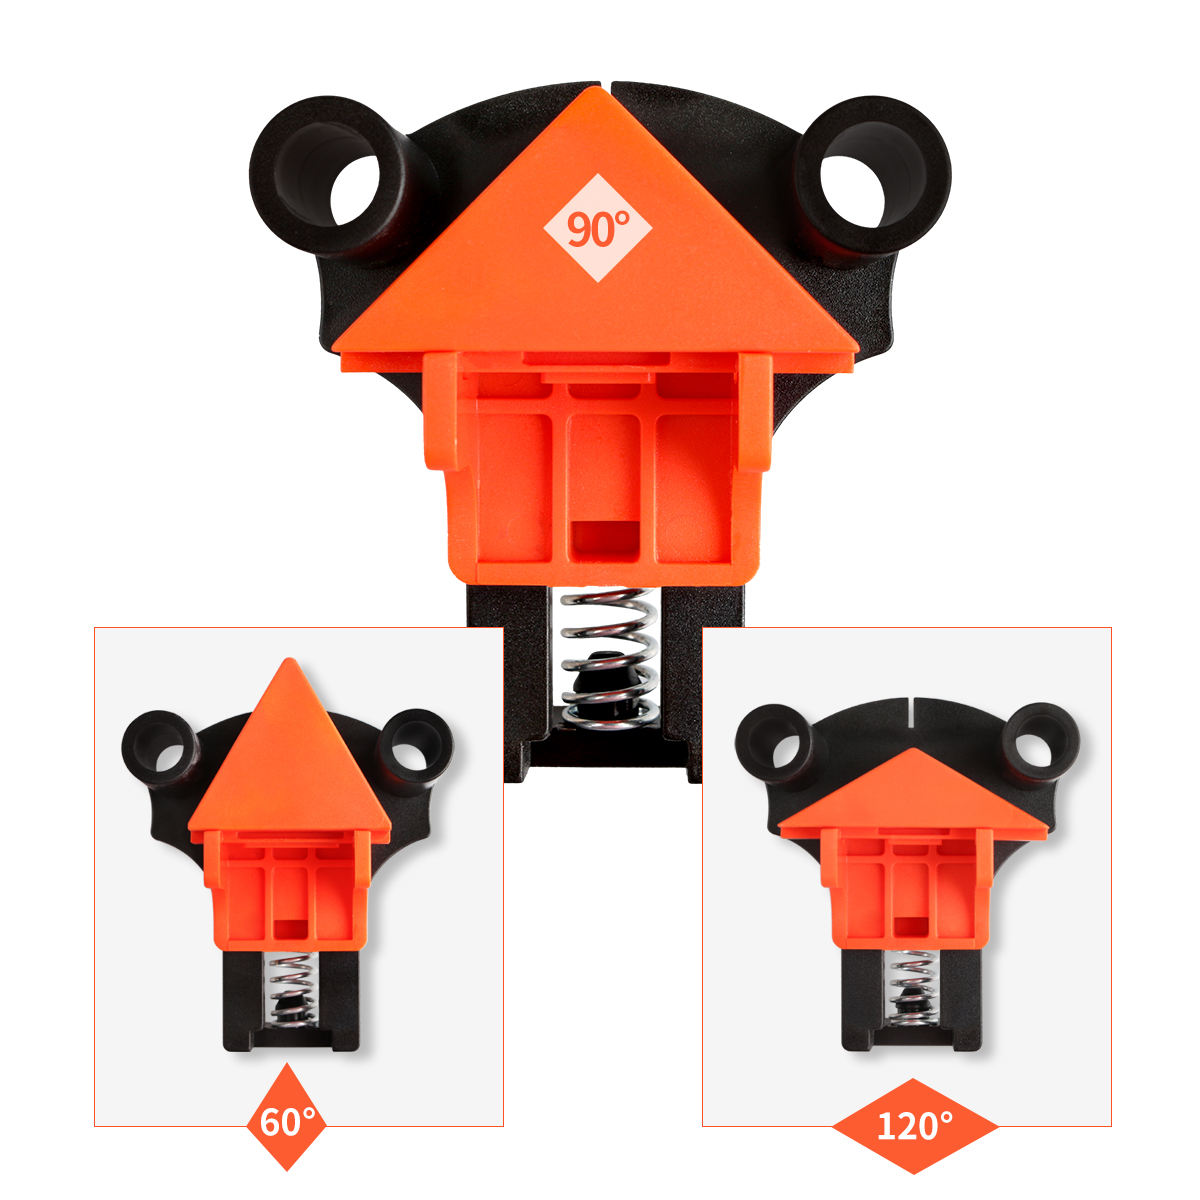 4 pcs 60/90/120 Degree Right Angle Wood Box Clamp Set Right Angle Clamp Fixing Clips Picture Frame Corner Clamp Woodworking